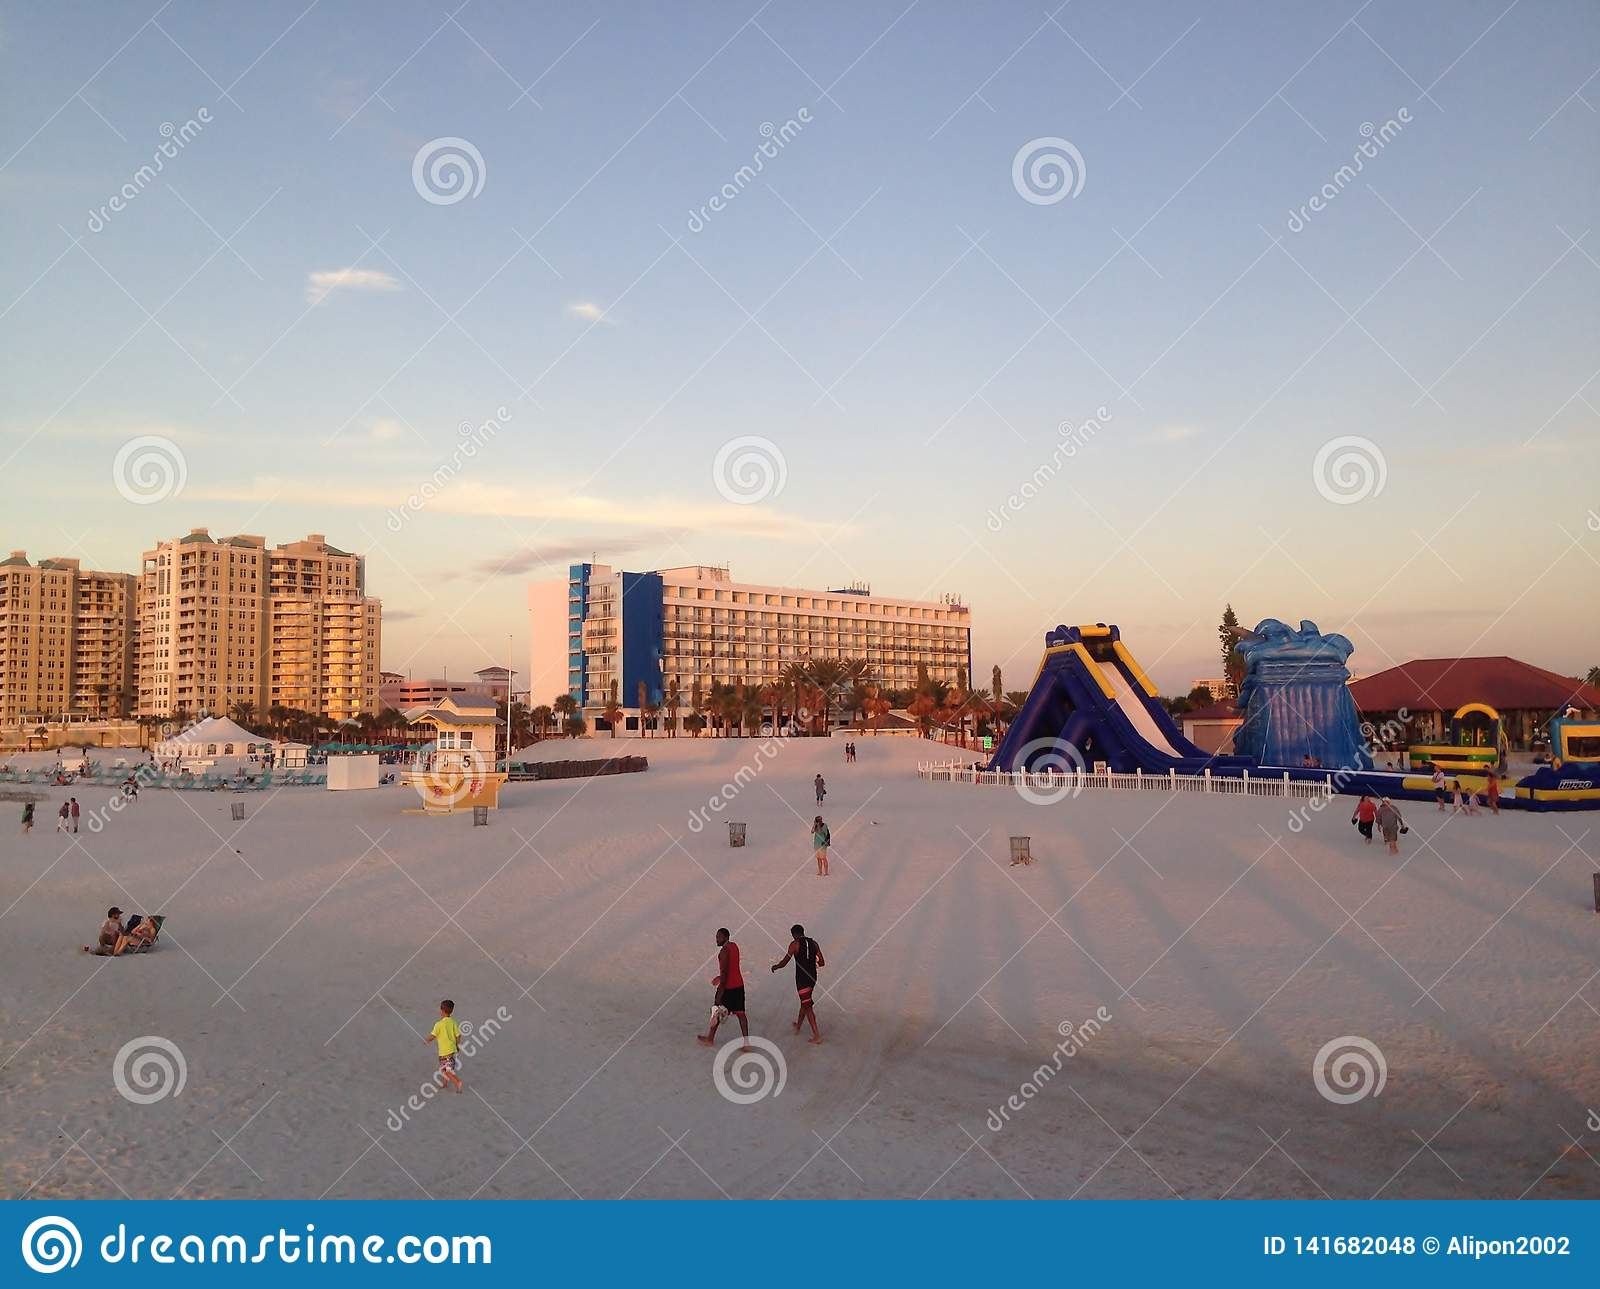 Enjoy the sand of Clearwater, Tampa